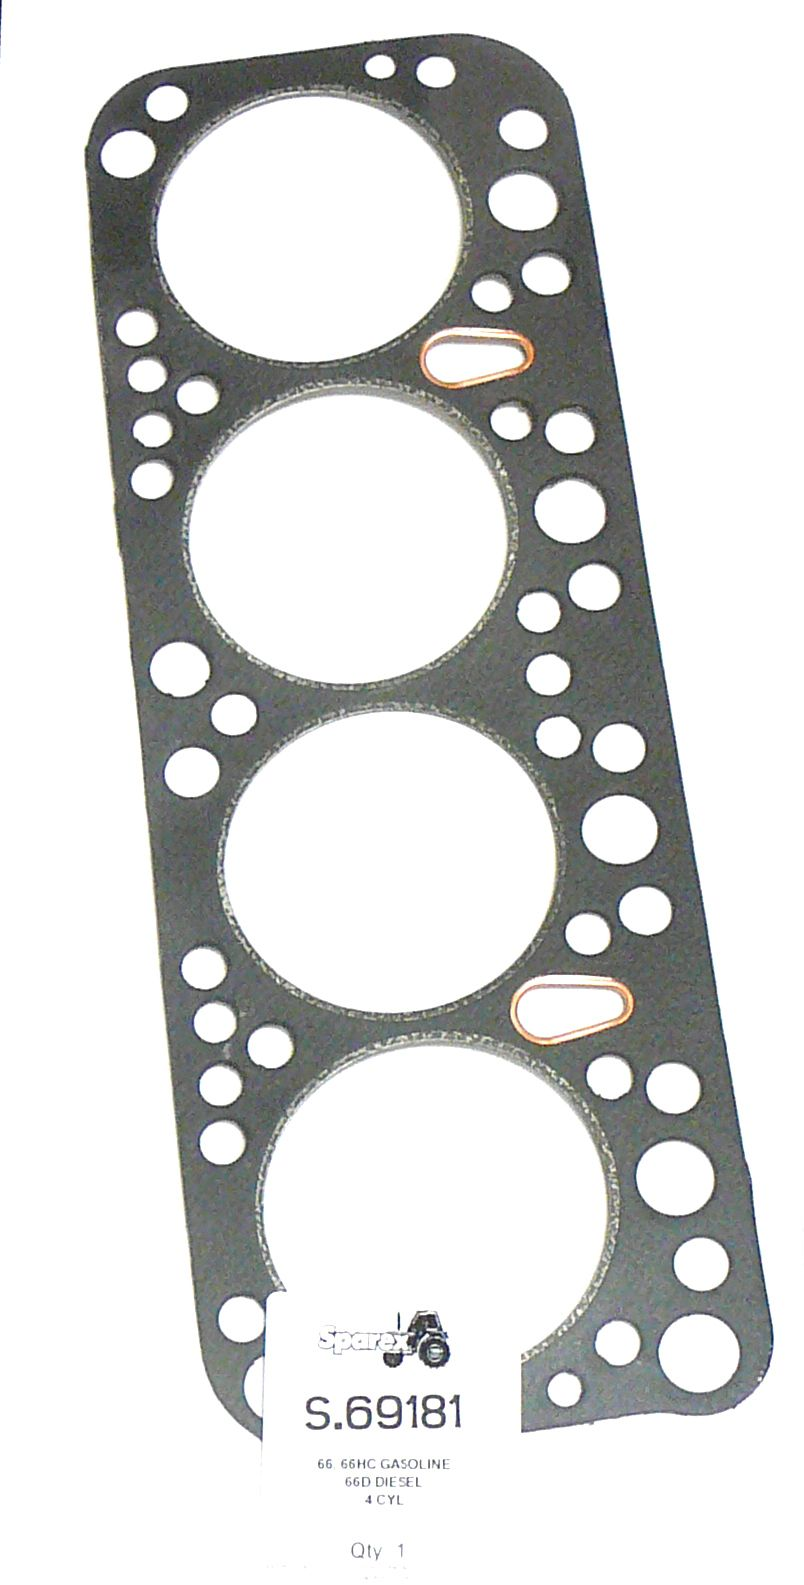 WHITE OLIVER HEAD GASKET 69181